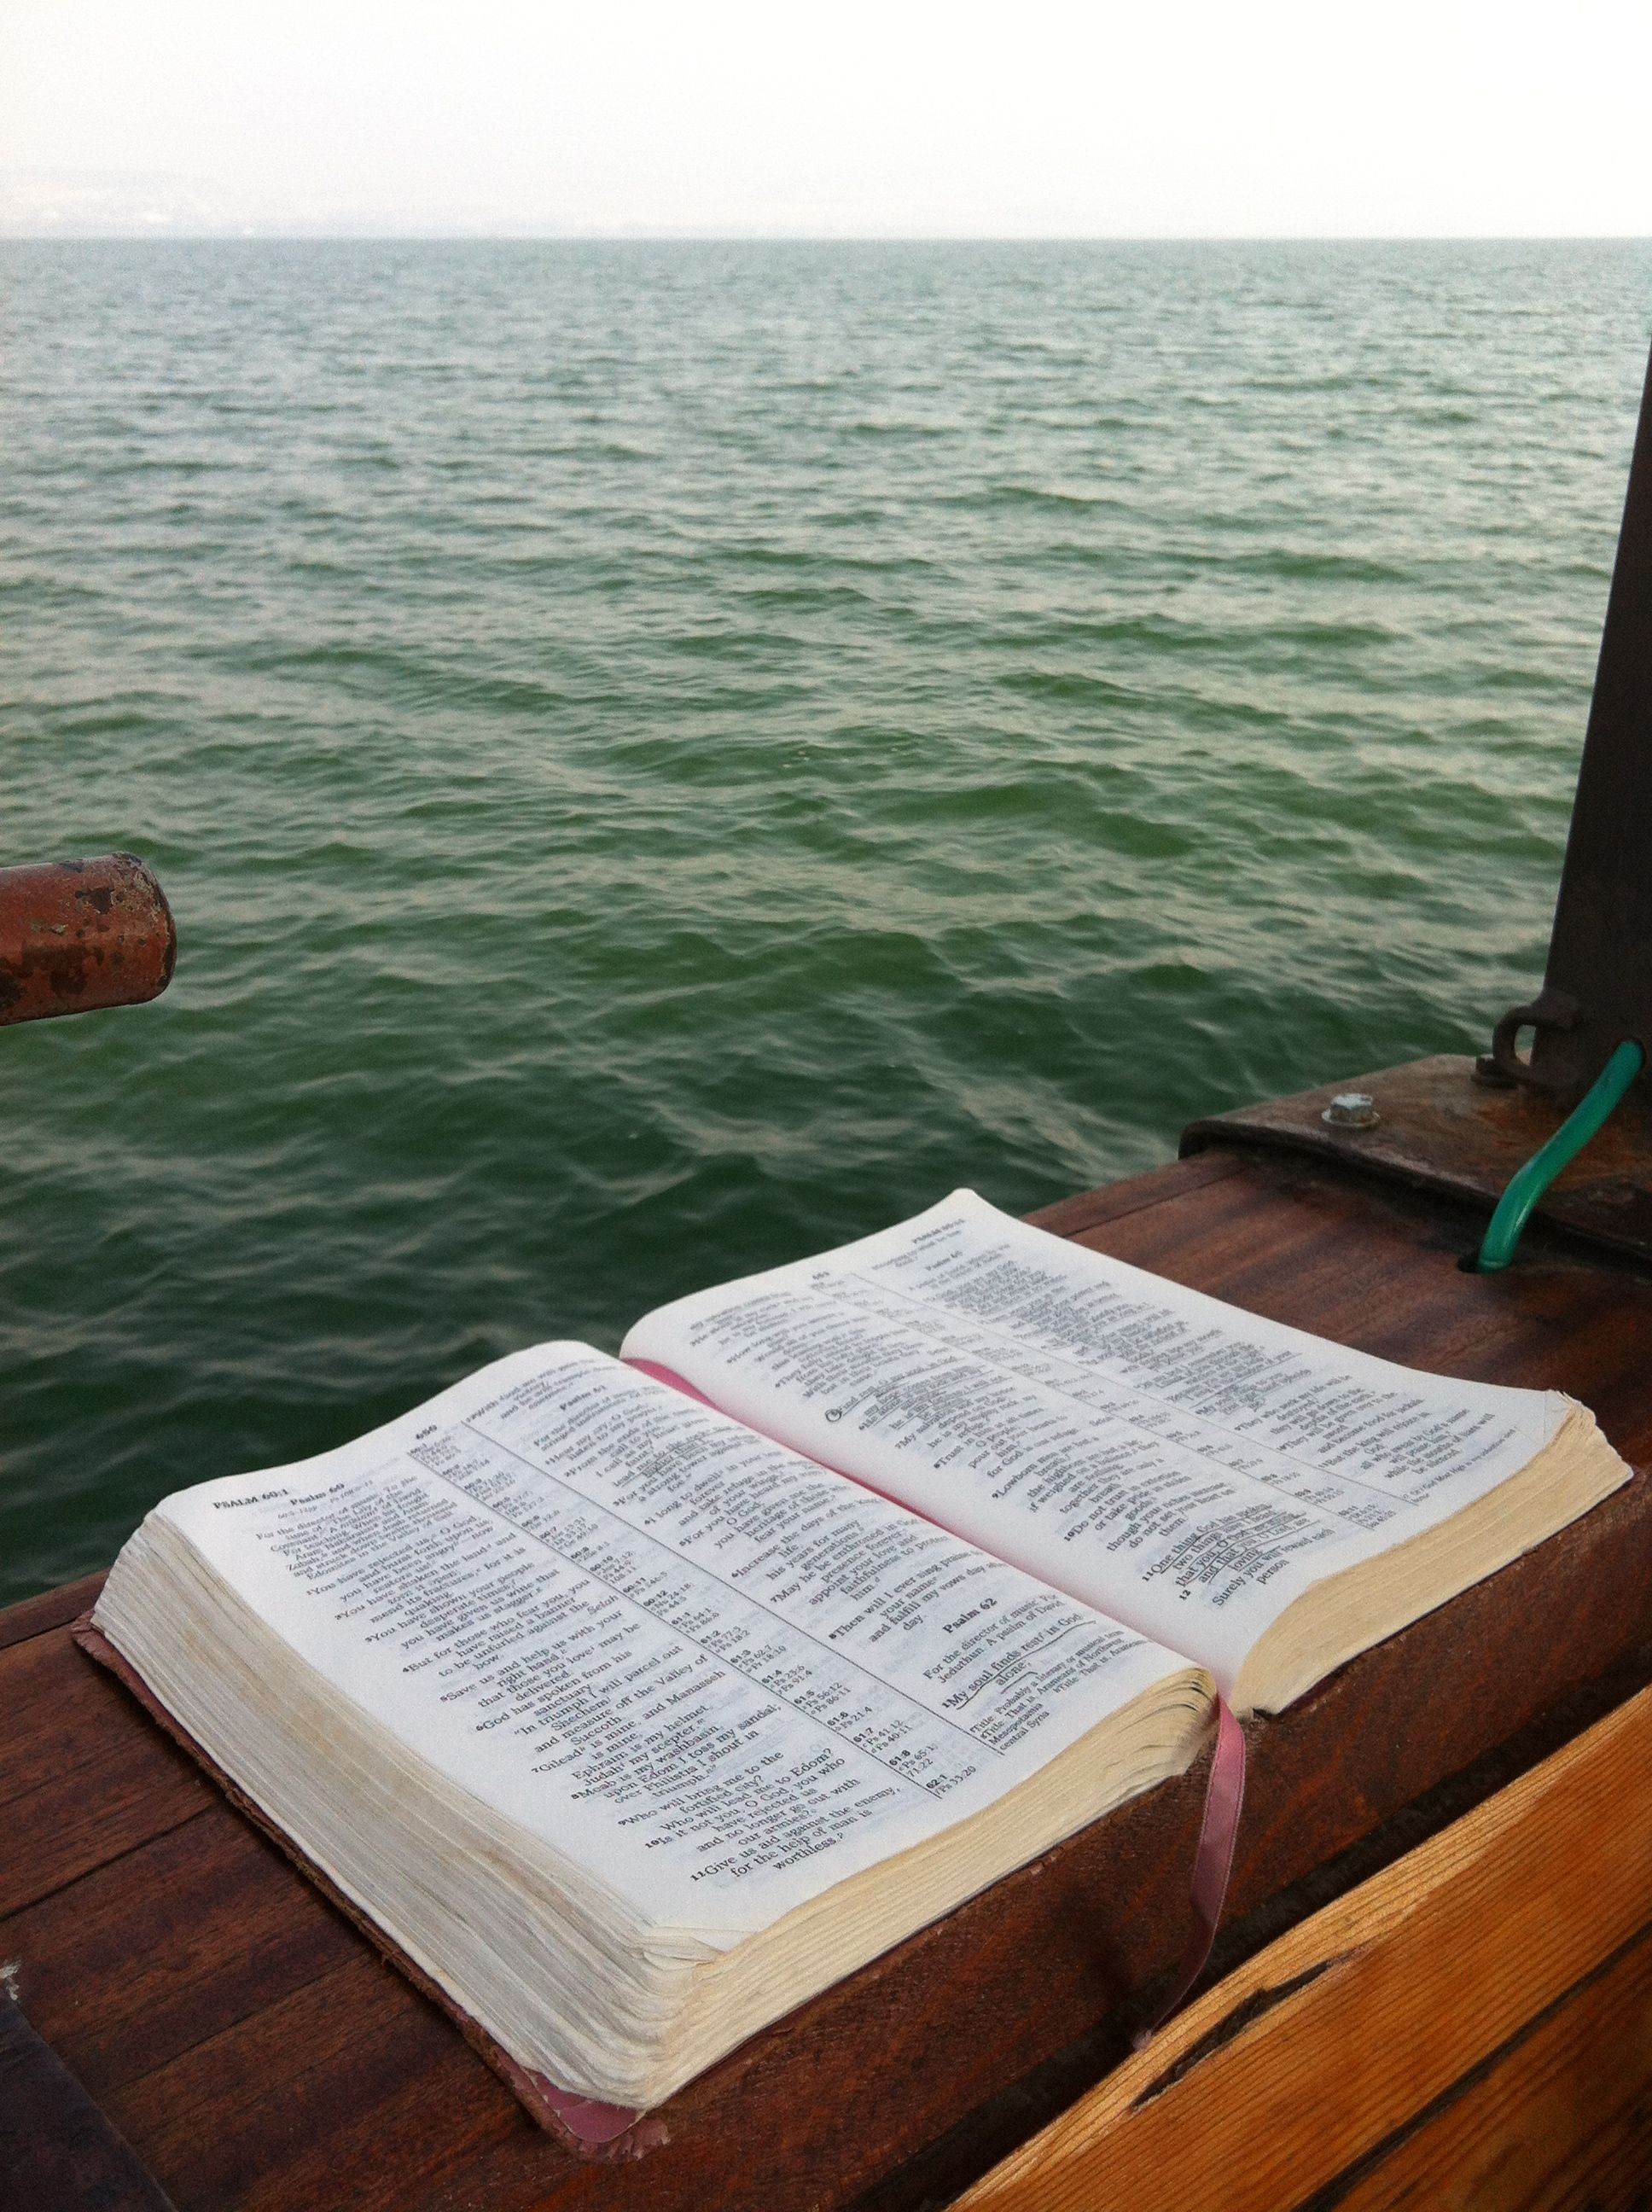 The Sea of Galilee - wit the Bible open, as it was even ...